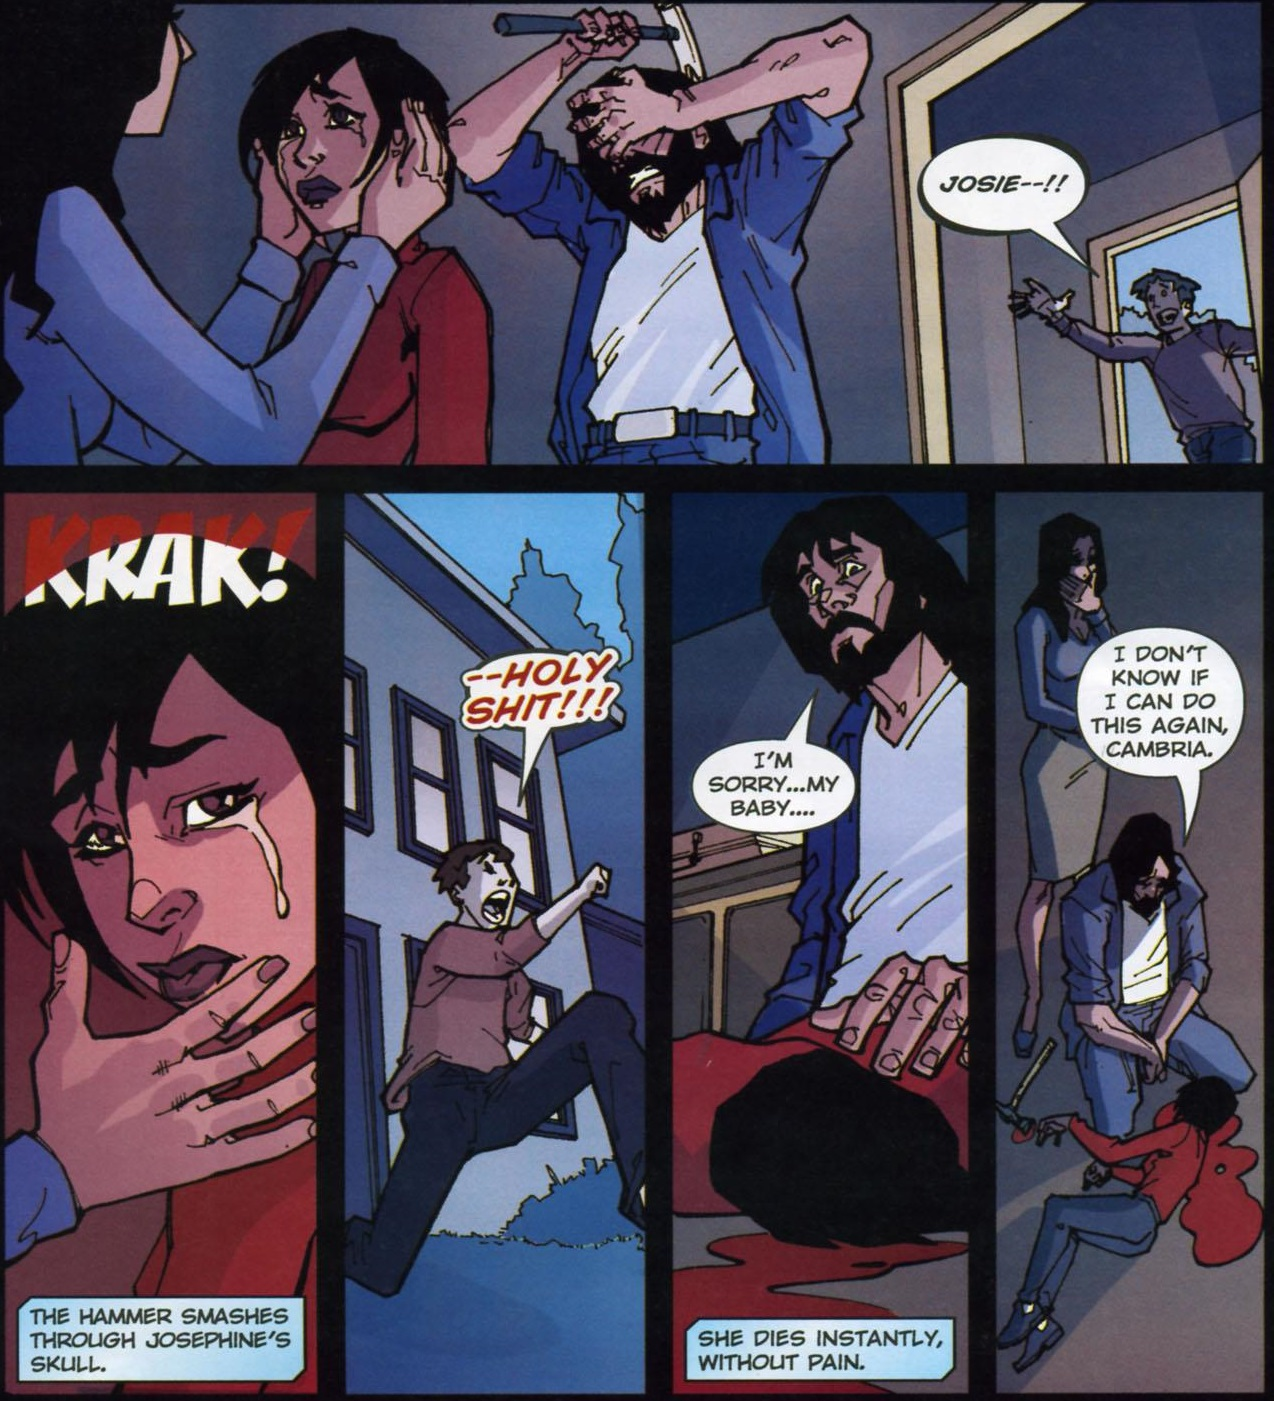 Anyway, all that happens, and Josephine runs straight home to get fucking murdered for completely unrelated reasons. These comics are  bad .